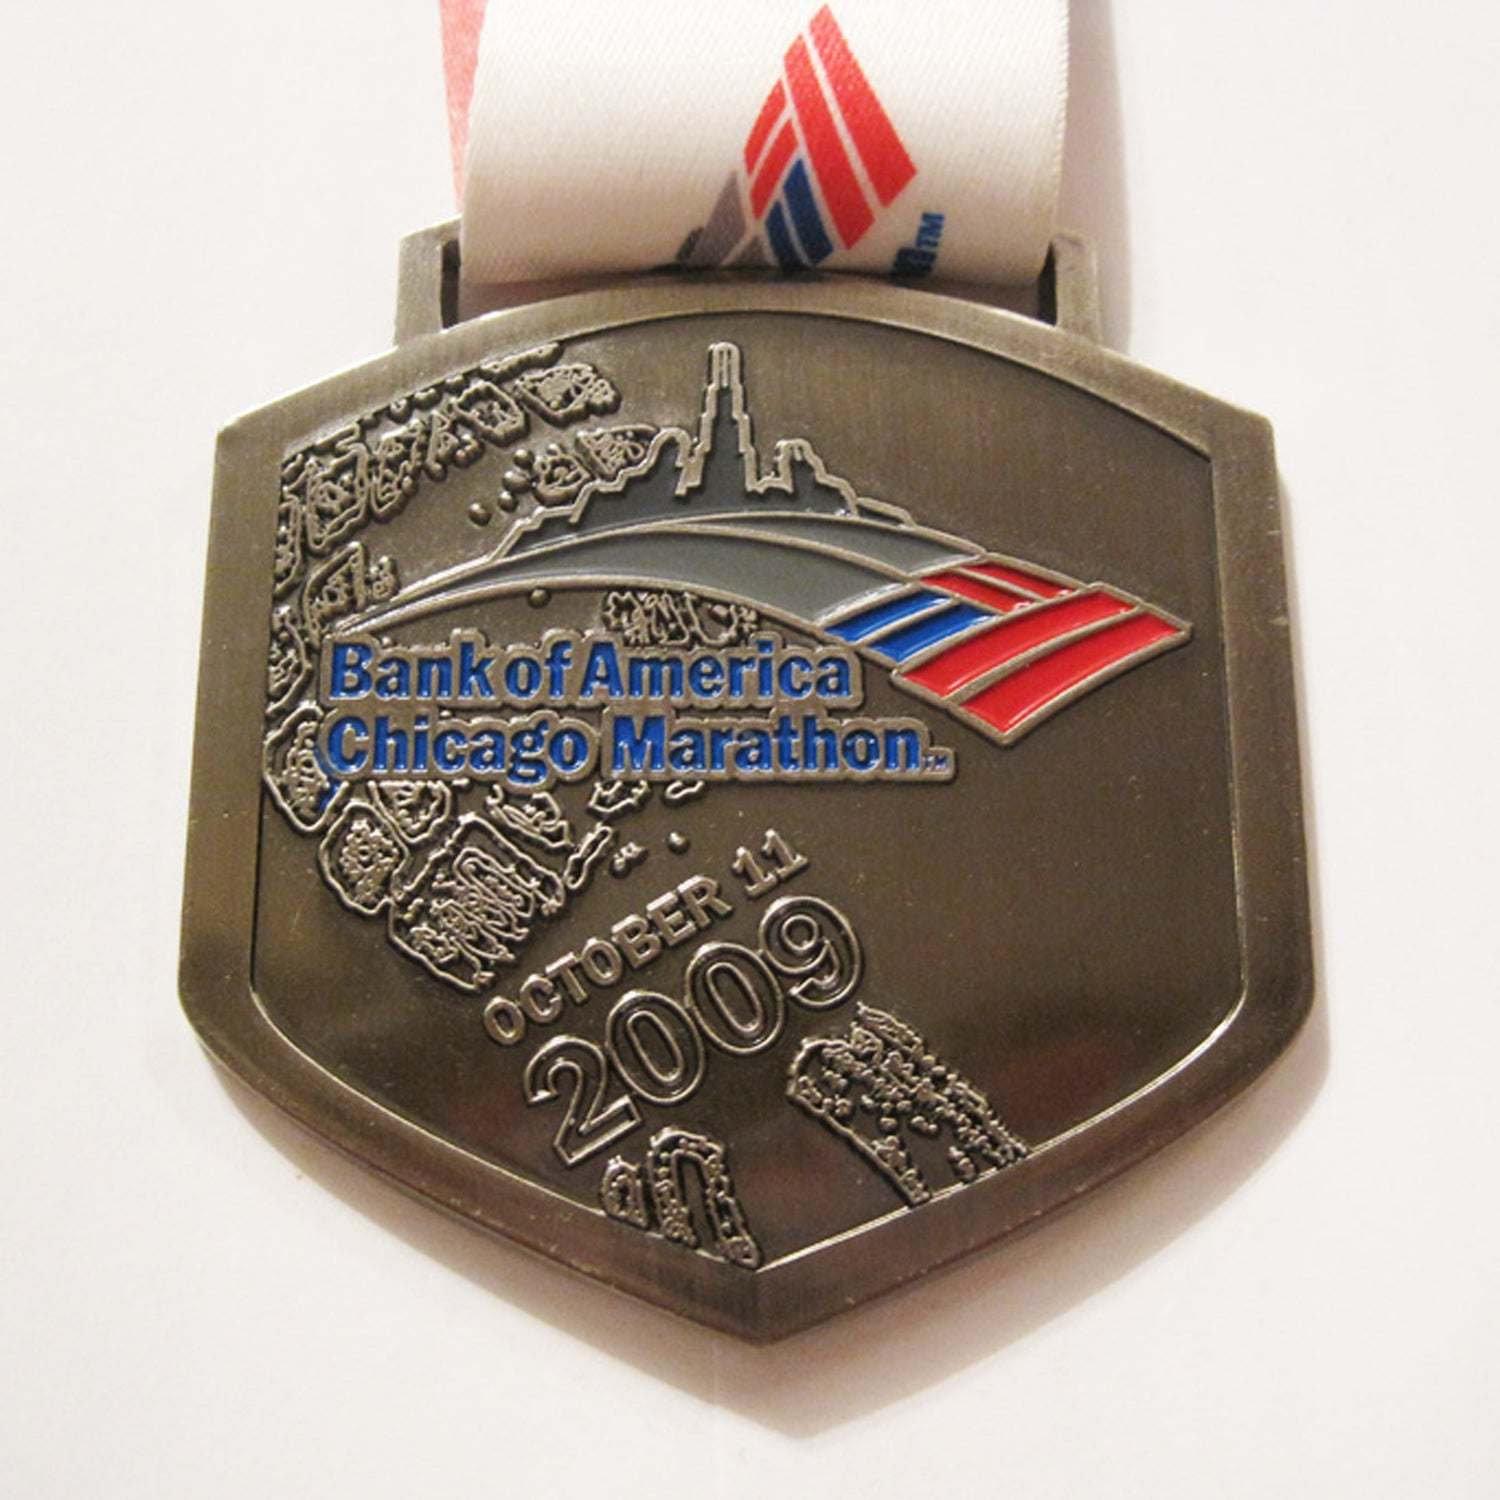 Solera: There's personal bias here, as this was my first-ever marathon. Nostalgia aside, this medal is a statement. Its shape resembles a shield or a crest, the embossed footprint design is emblematic of the physical struggle, and the ribbon is suitably colorful. An excellent medal for the best race in the world.